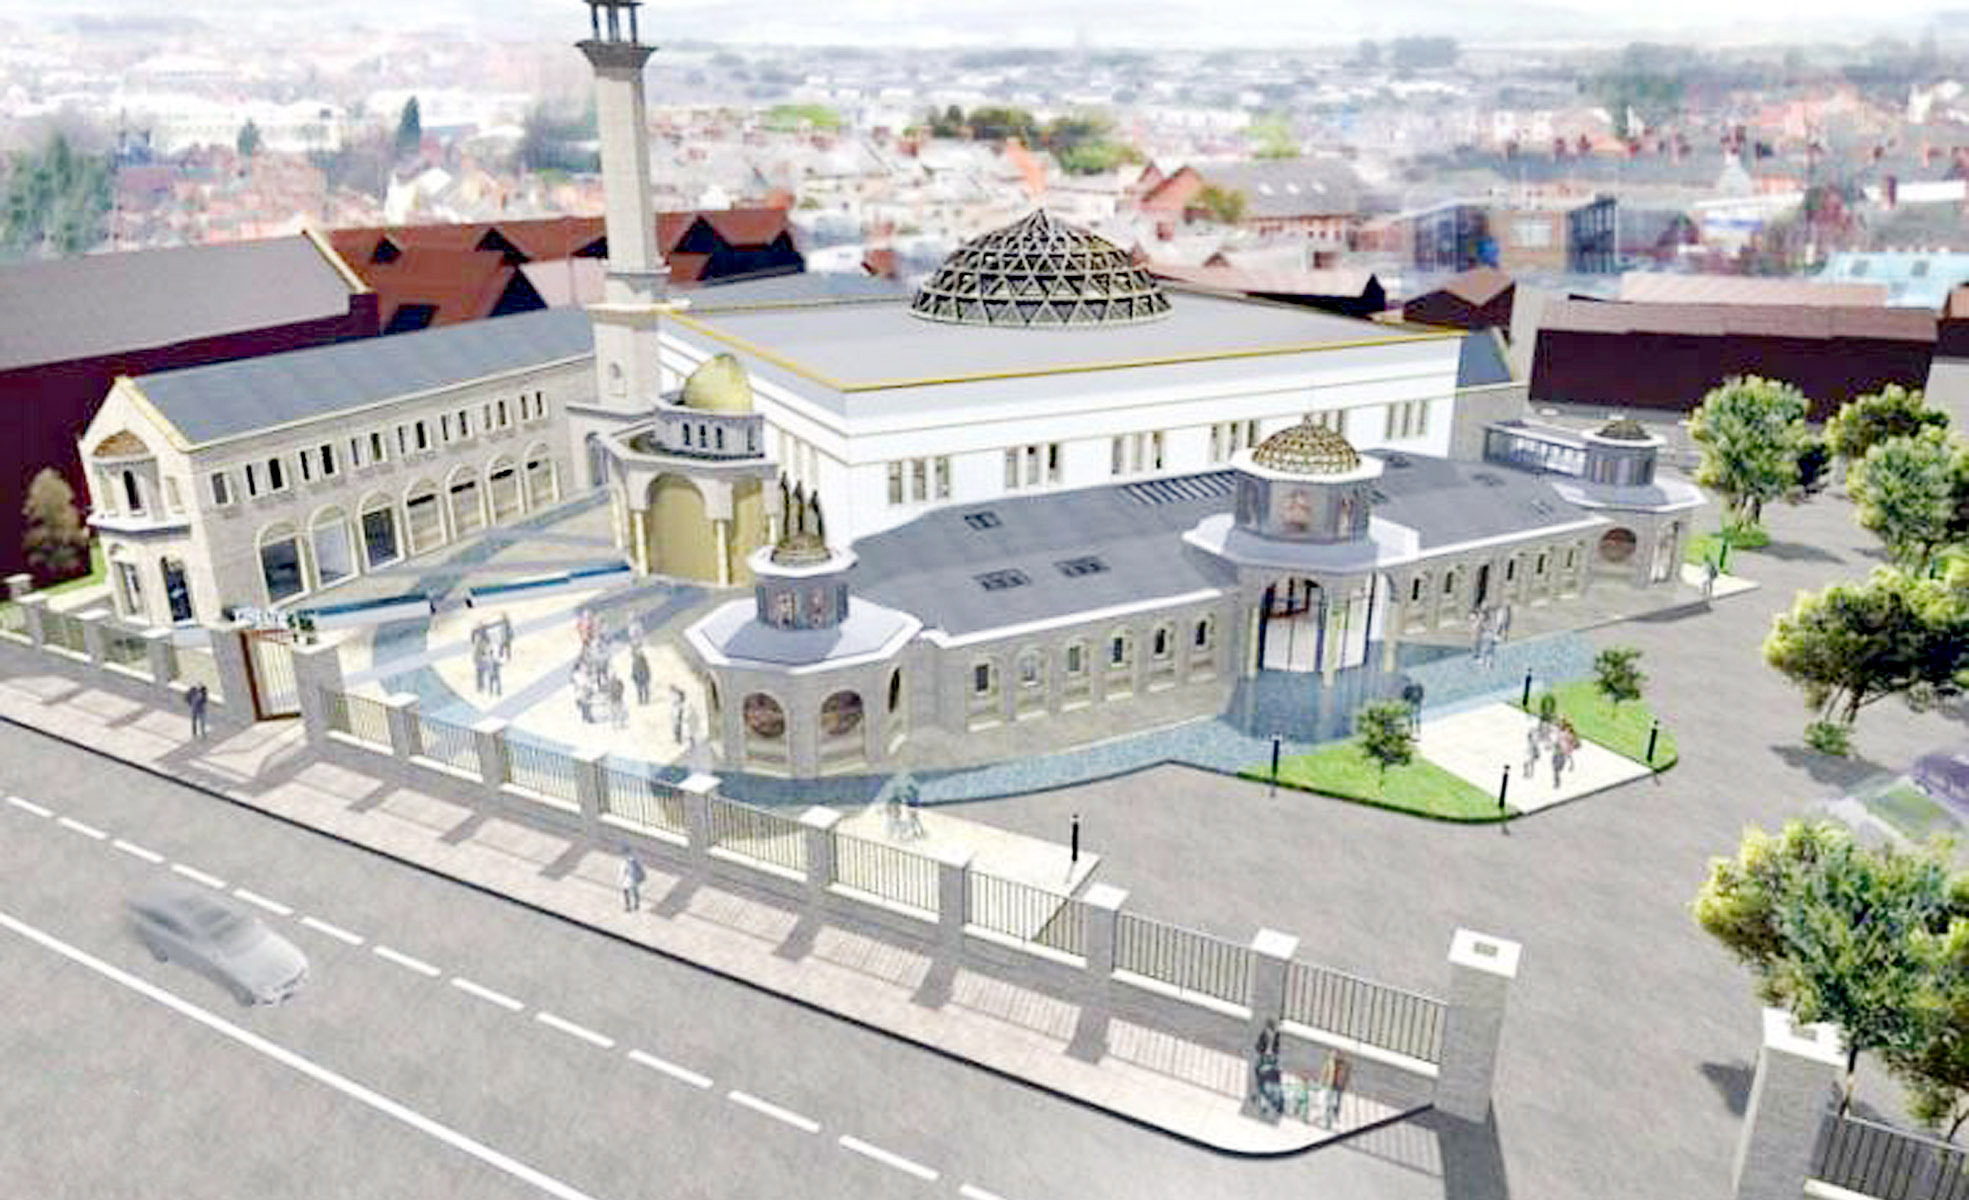 An artist's impression of the new mosque planned in Blackburn Road, Astley Bridge